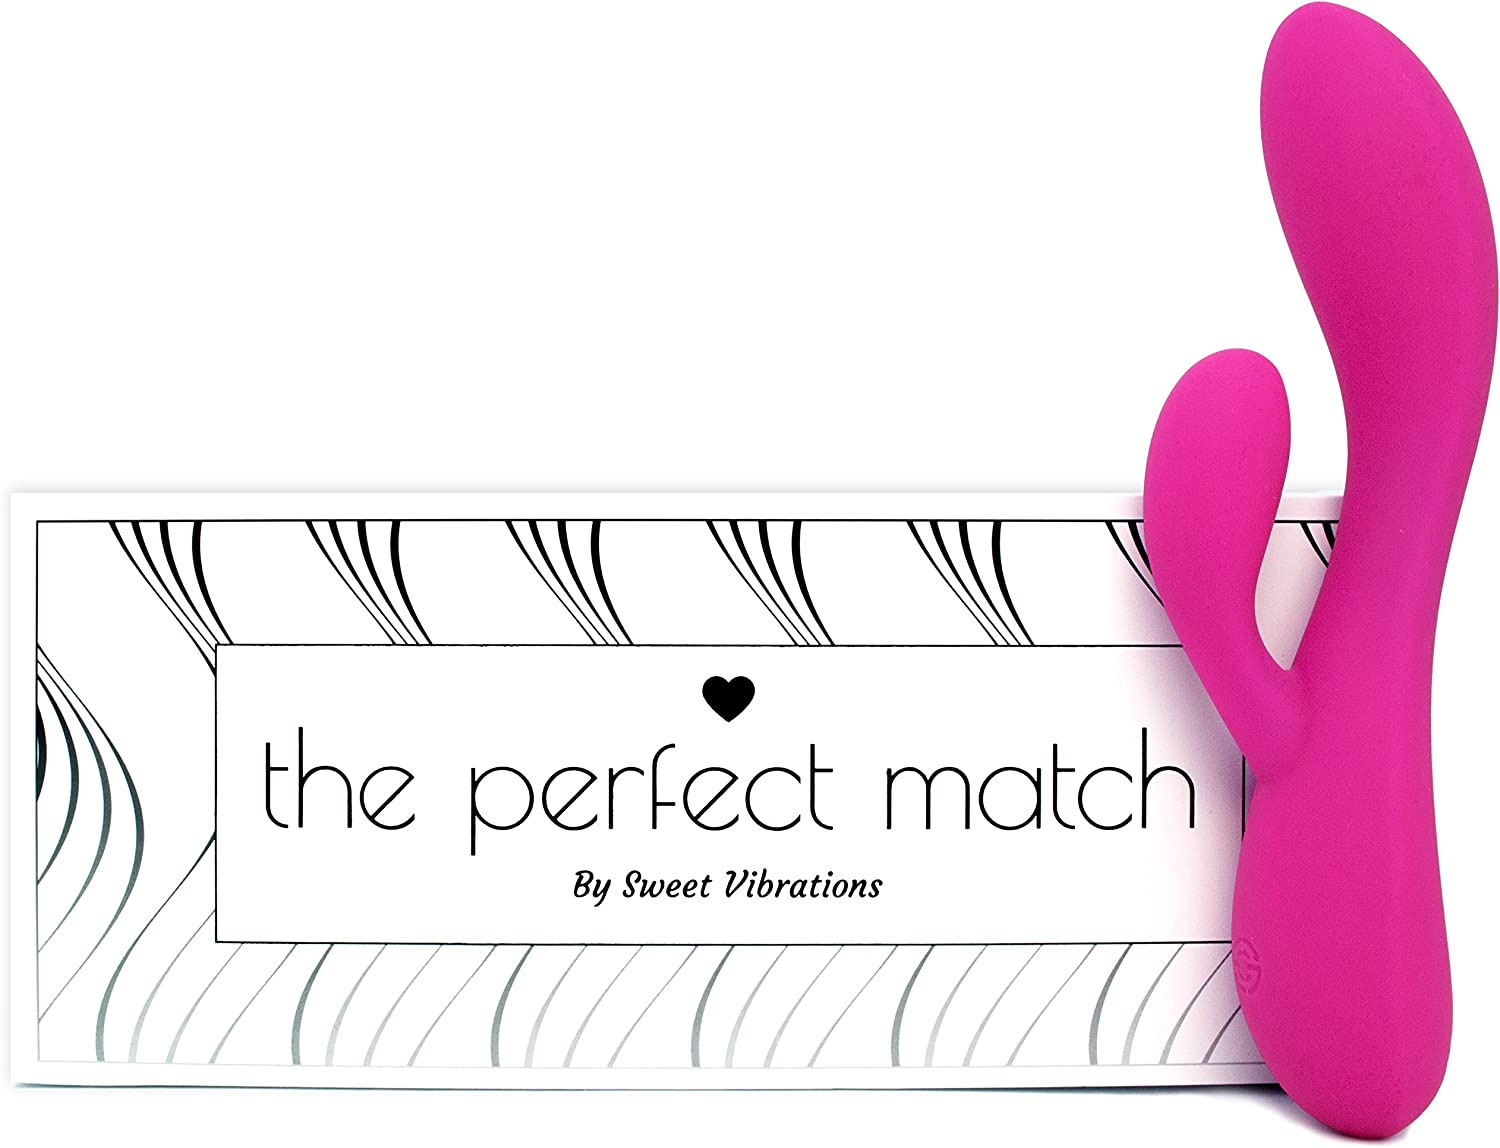 The Sweet Vibrations The Perfect Match travel product recommended by Sarah Melancon on Pretty Progressive.